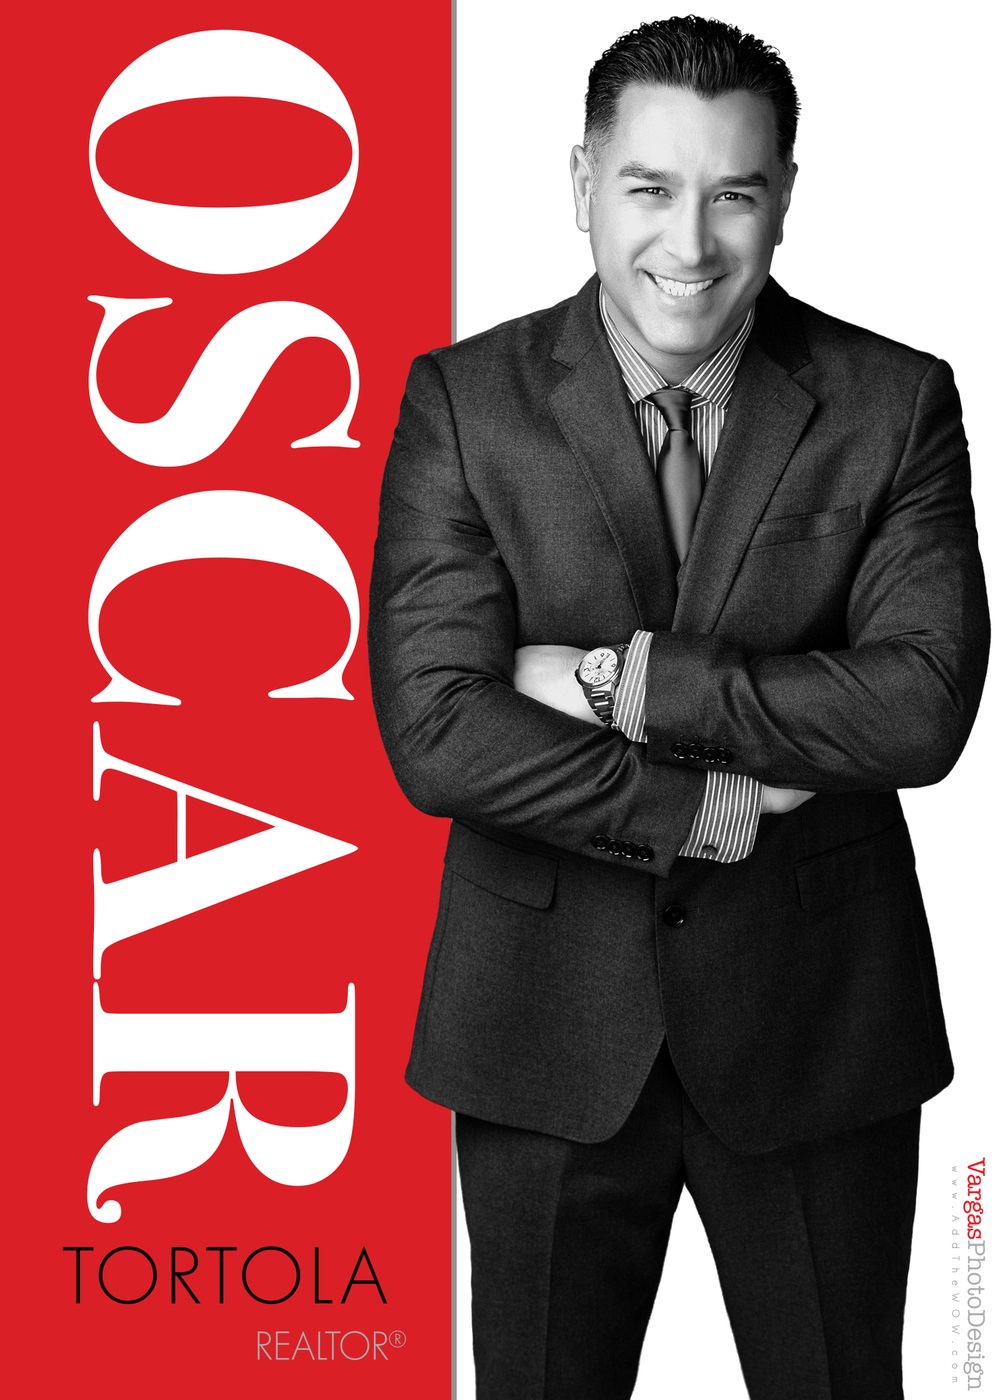 Oscar Tortola Realtor, Corona, CA Keller Williams Real Estate